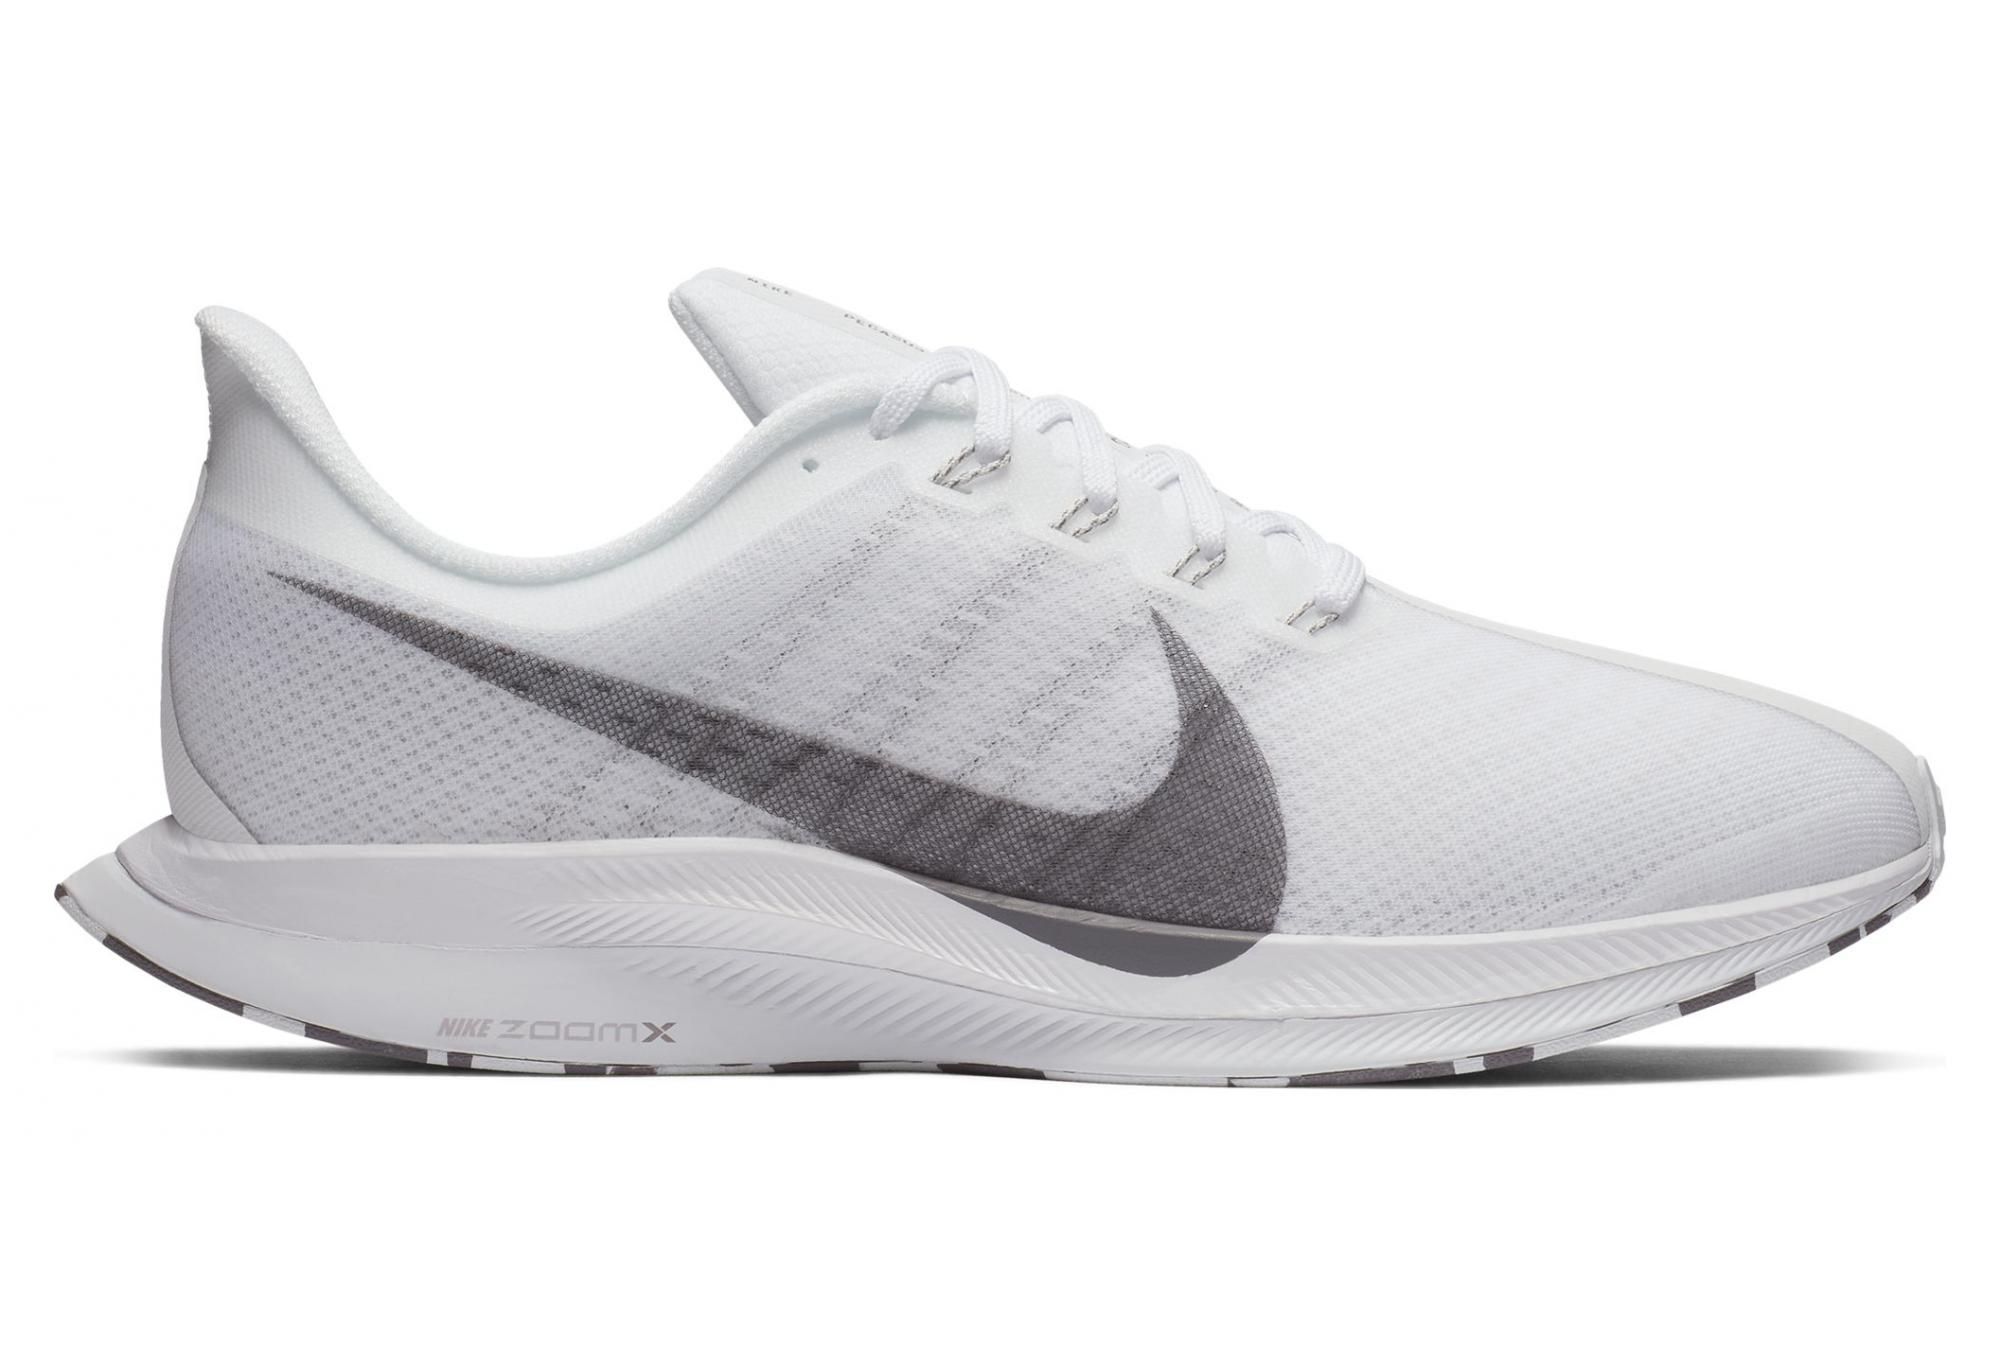 Nike Zoom Pegasus 35 Turbo Shoe Reviews